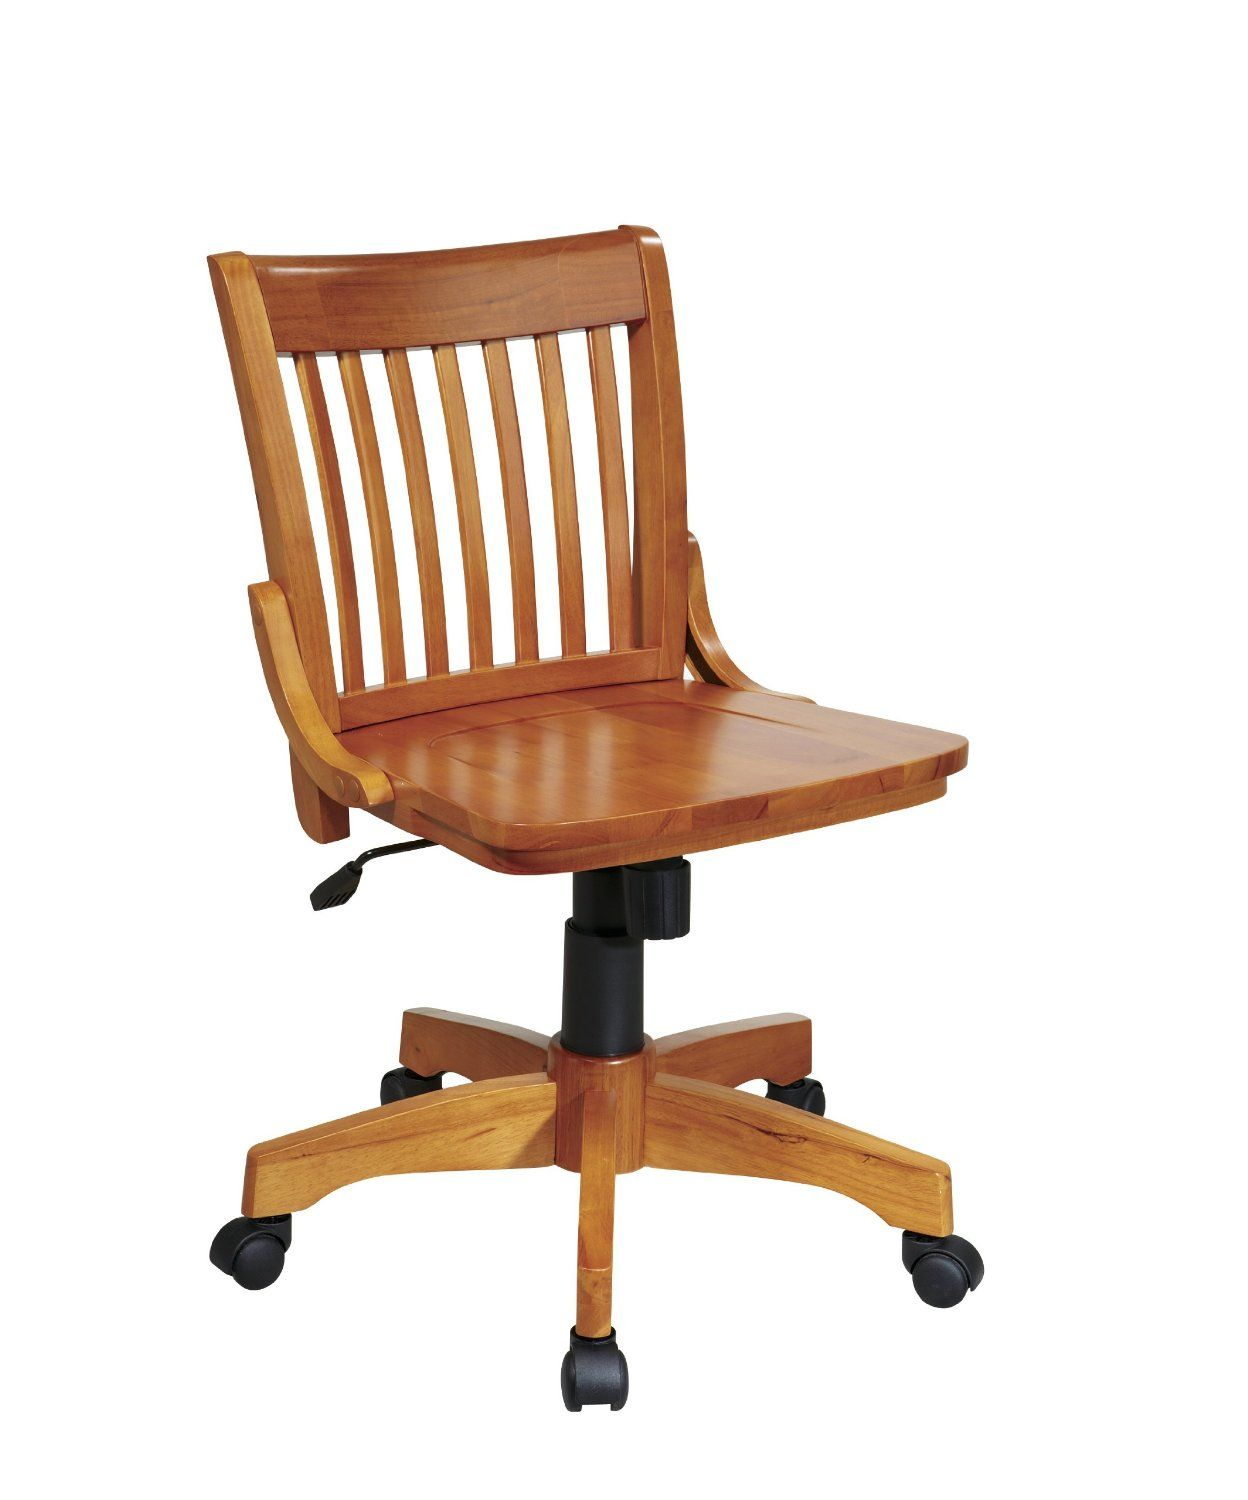 Buy Desk Chair Amazoncom Osp Designs Deluxe Armless Wood Bankers Desk Chair